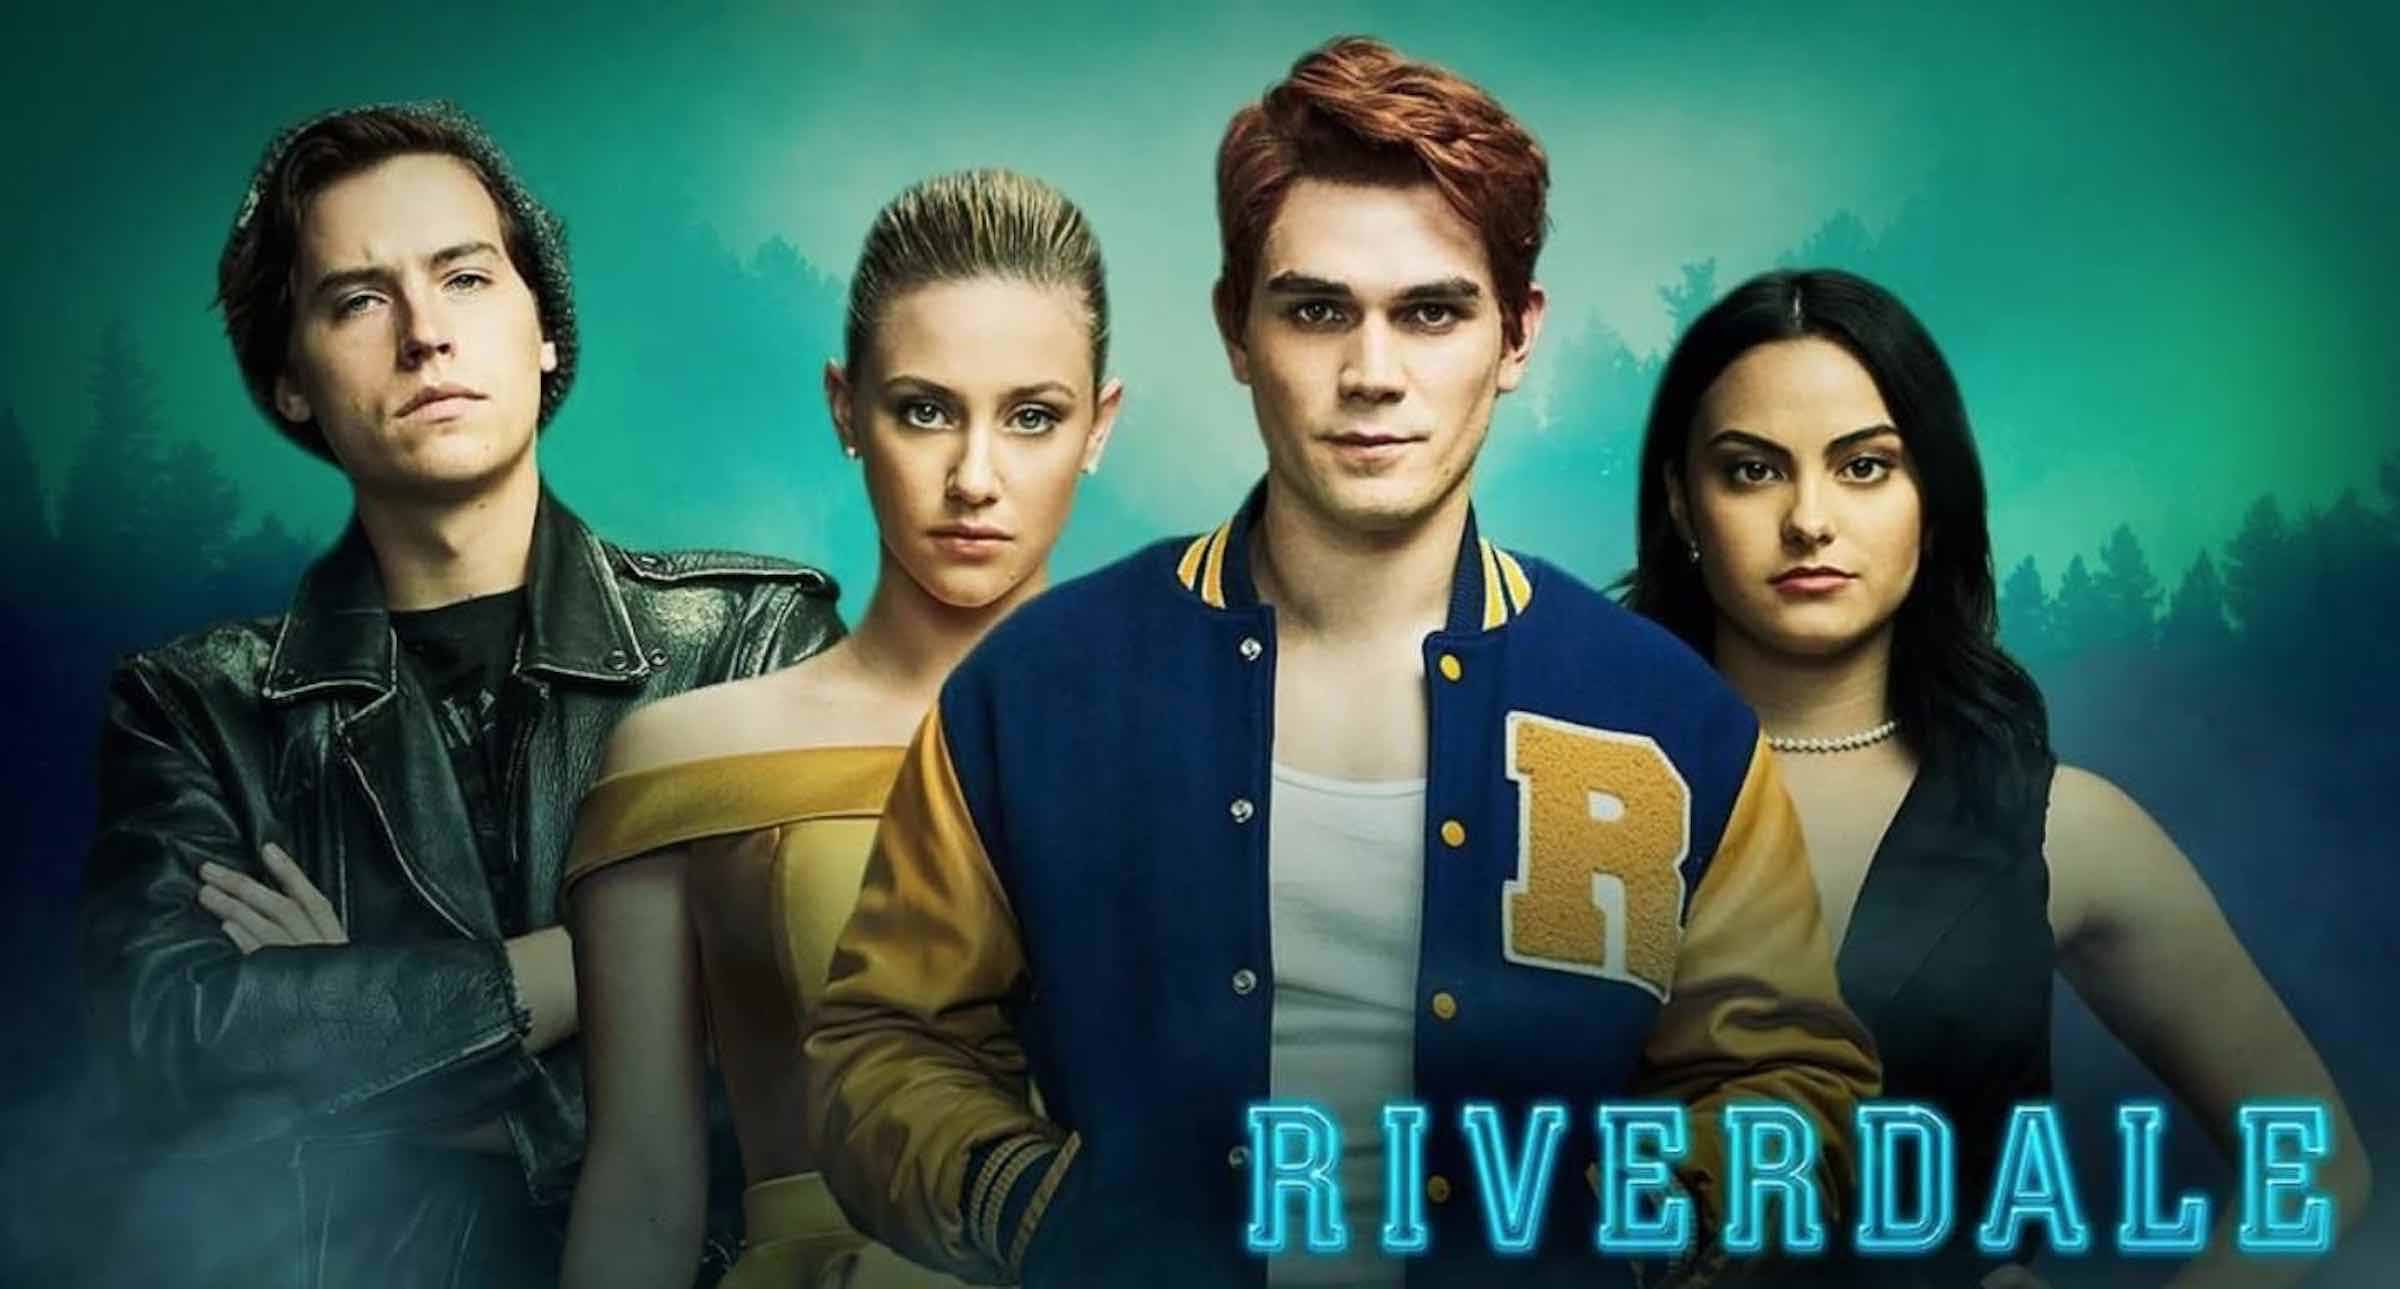 sad tv scenes: Riverdale